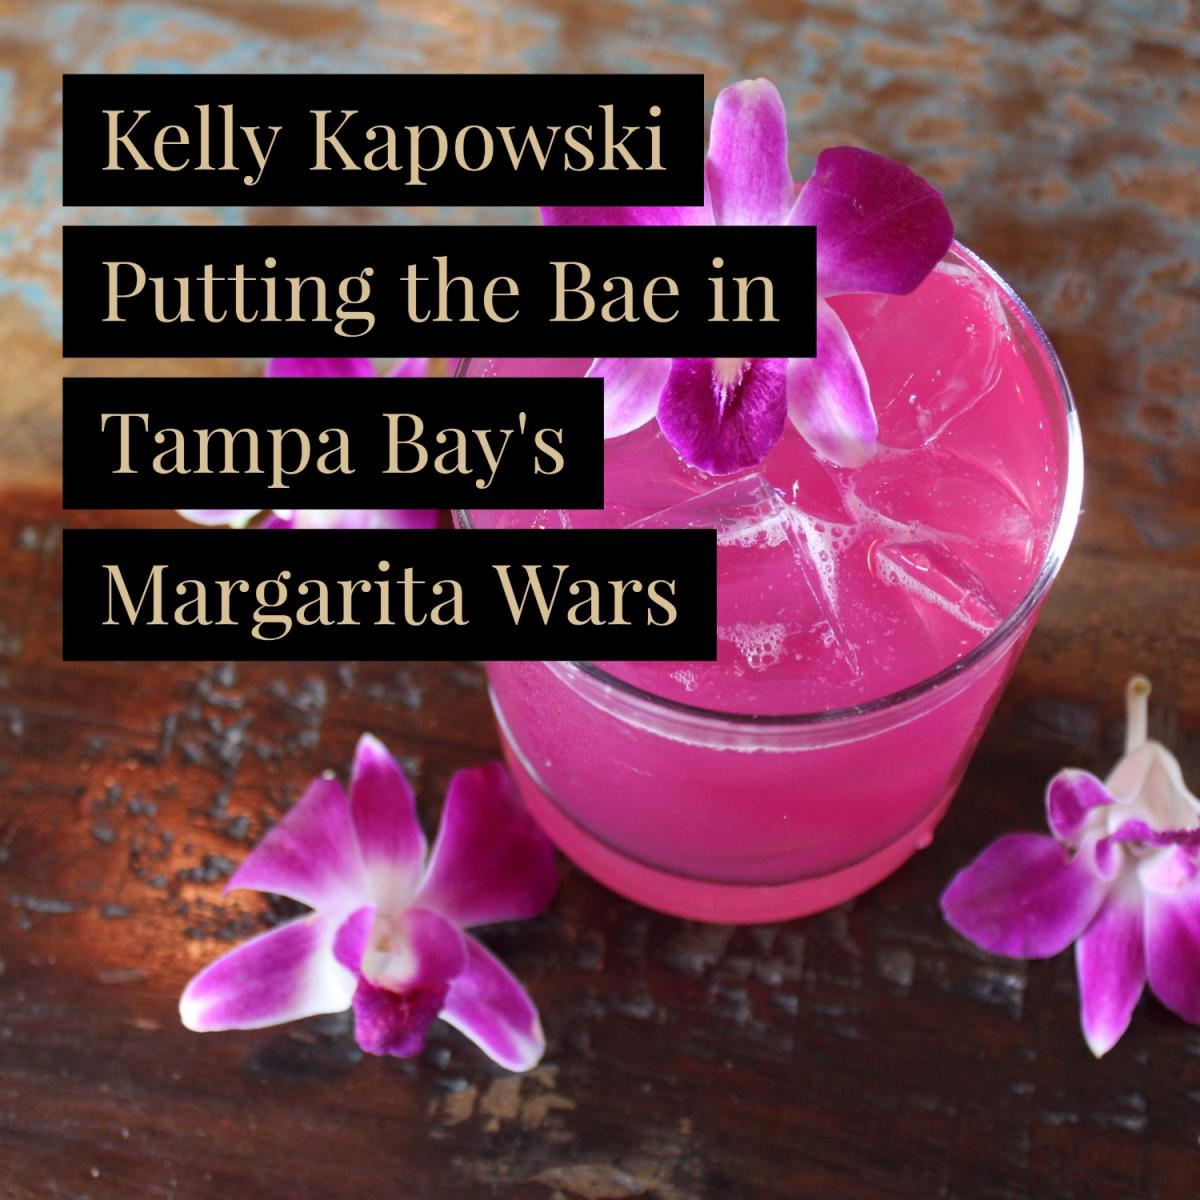 Kelly Kapowski Puts the Bae in Tampa Bay's Margarita Wars